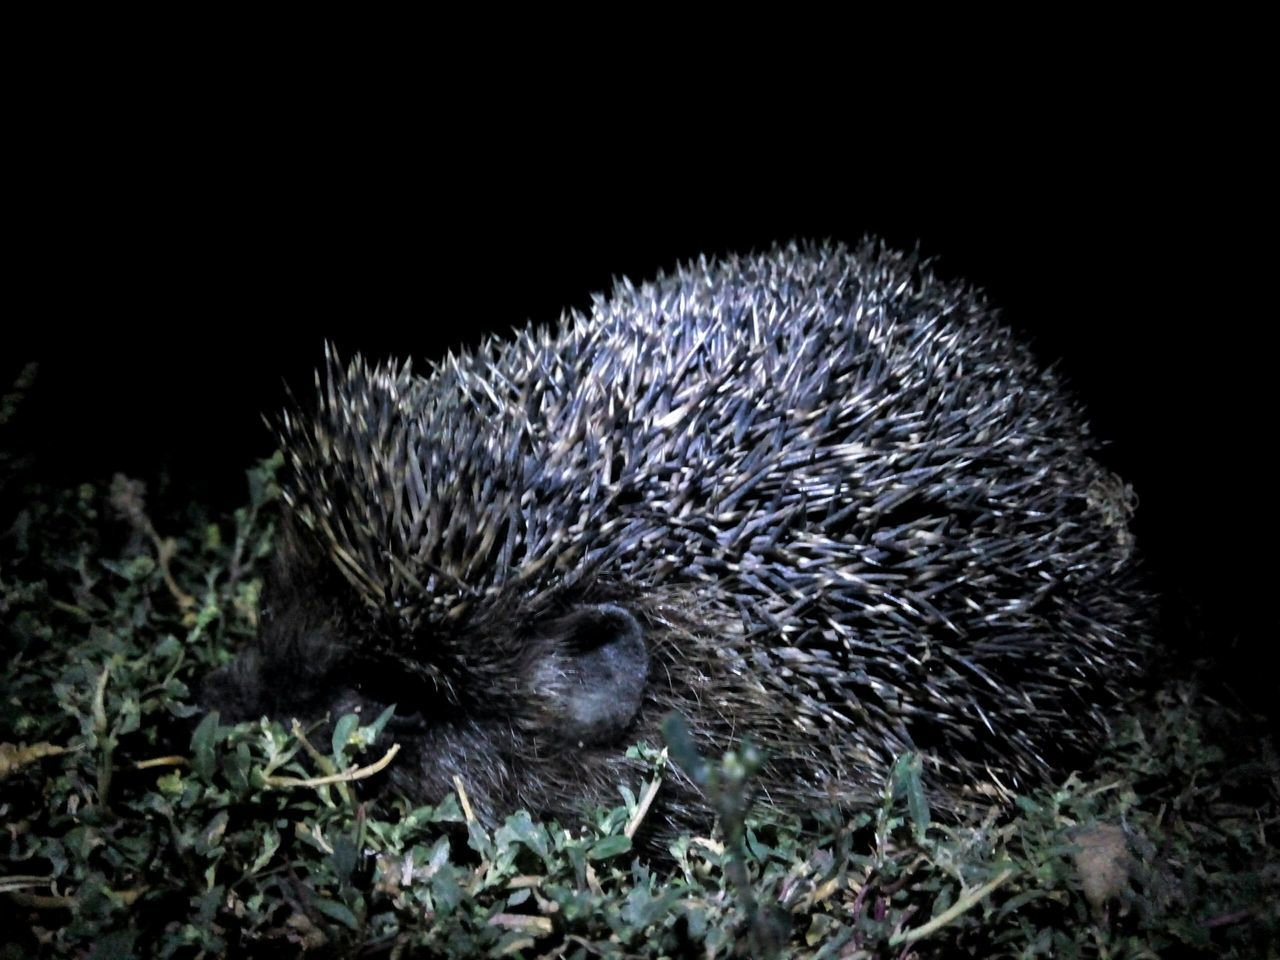 night, one animal, hedgehog, animal themes, animals in the wild, animal wildlife, mammal, no people, nature, outdoors, close-up, grass